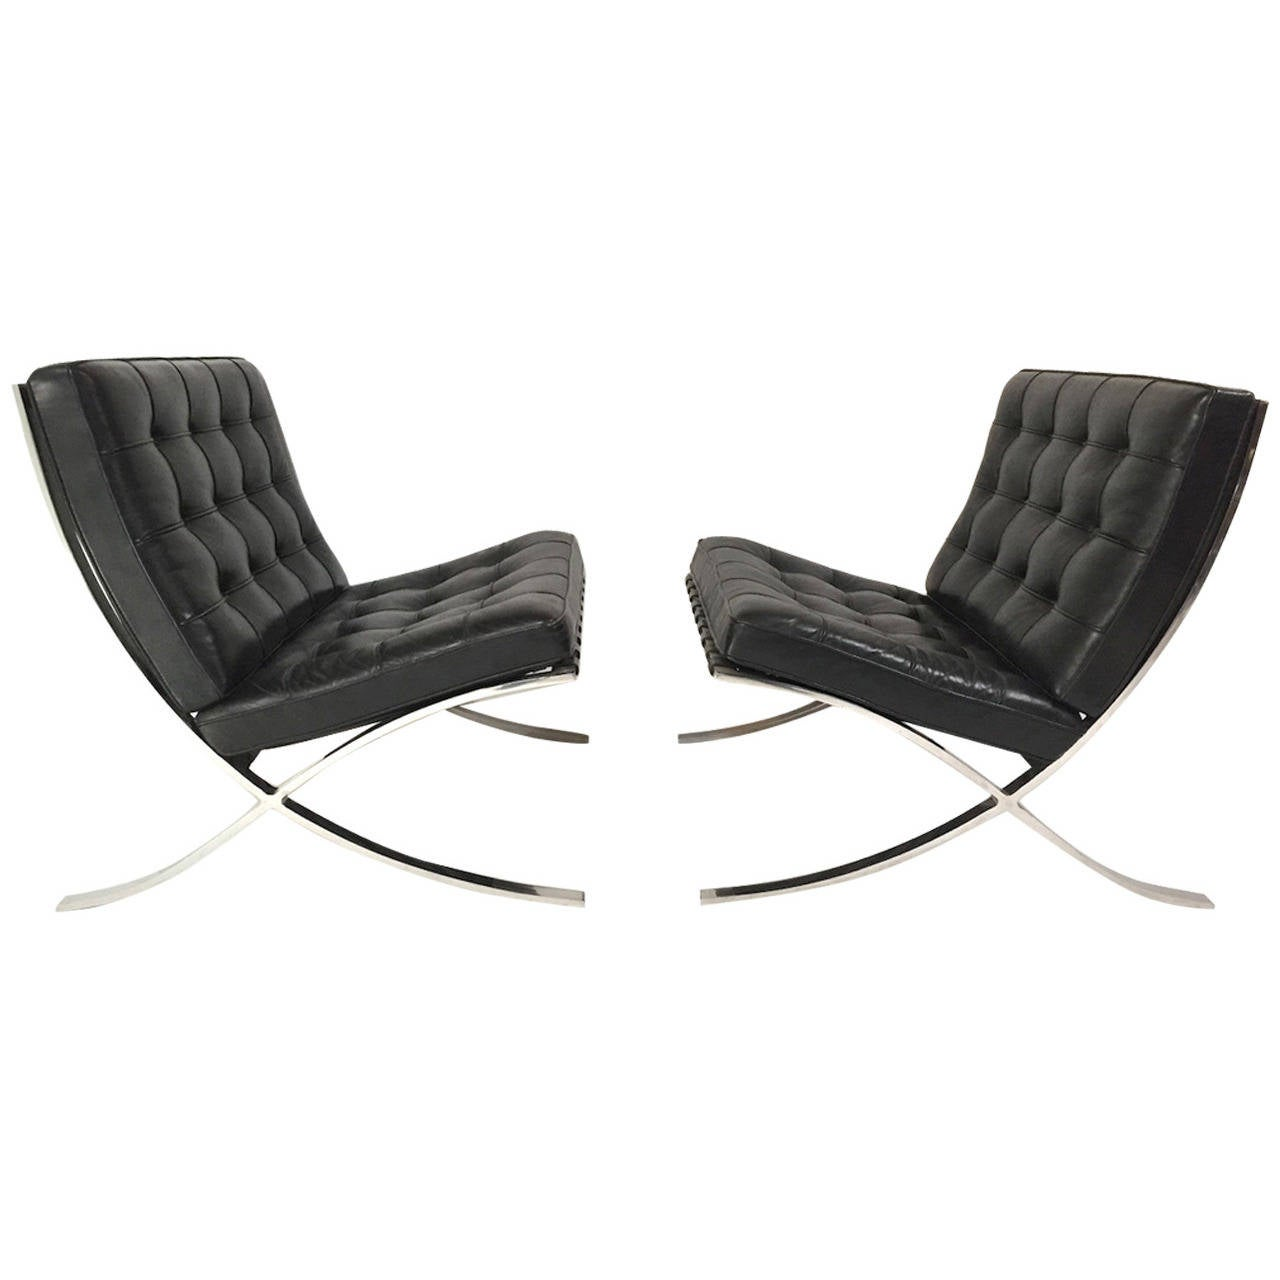 pair of authentic mies van der rohe black leather barcelona chairs by. Black Bedroom Furniture Sets. Home Design Ideas